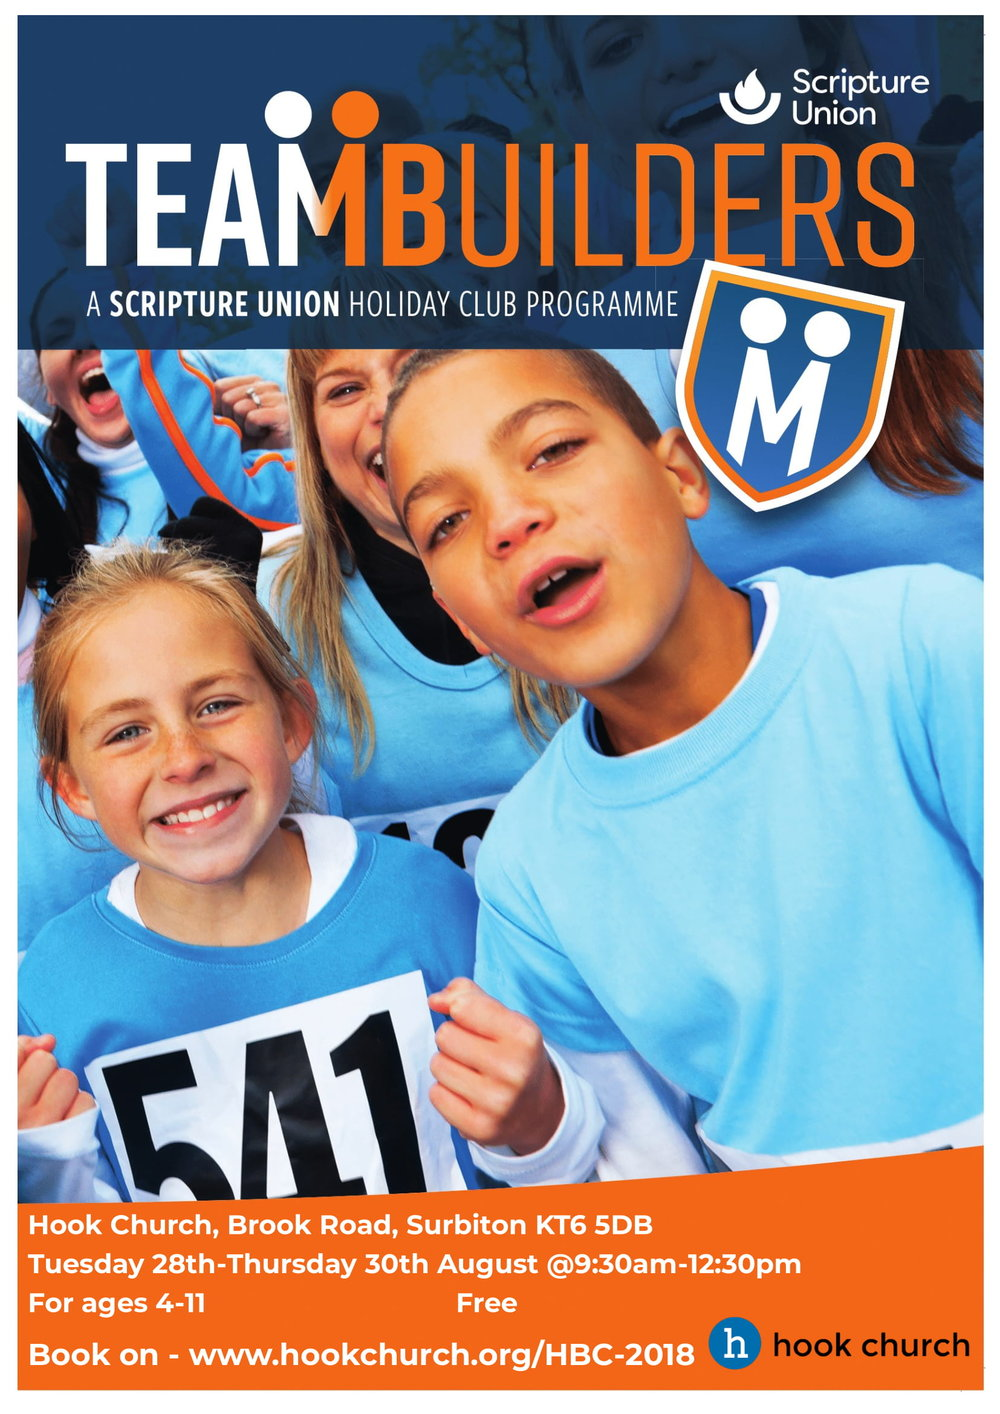 Teambuilders poster FINAL-1.jpg